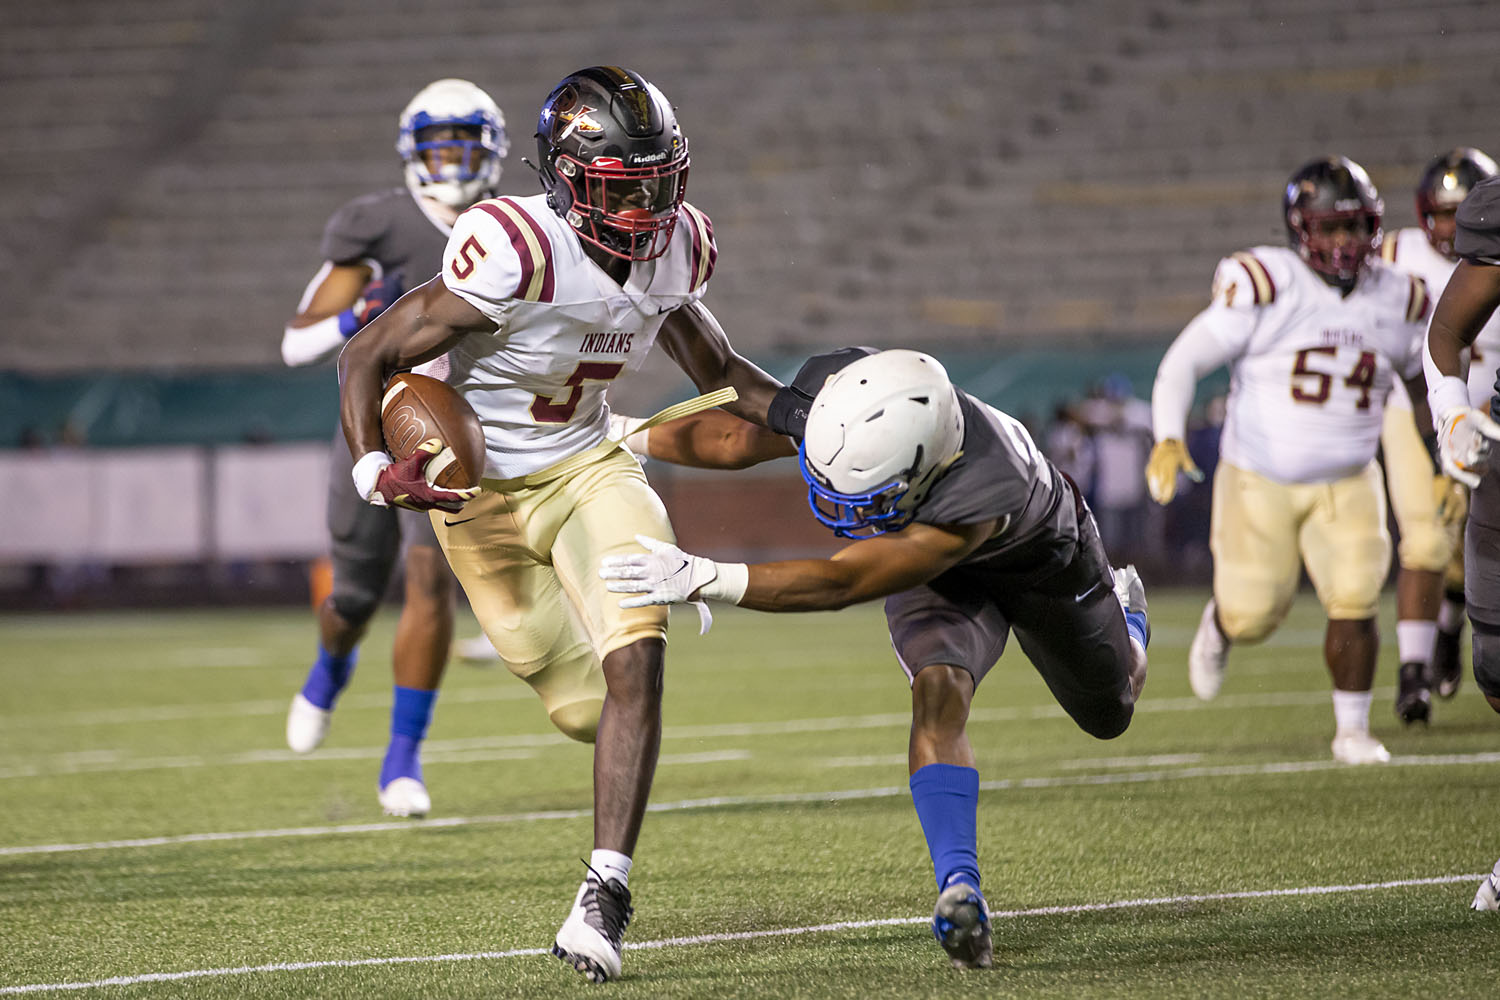 Mortimer Jordan will not travel to Pinson this Friday; Indians look for replacement opponent